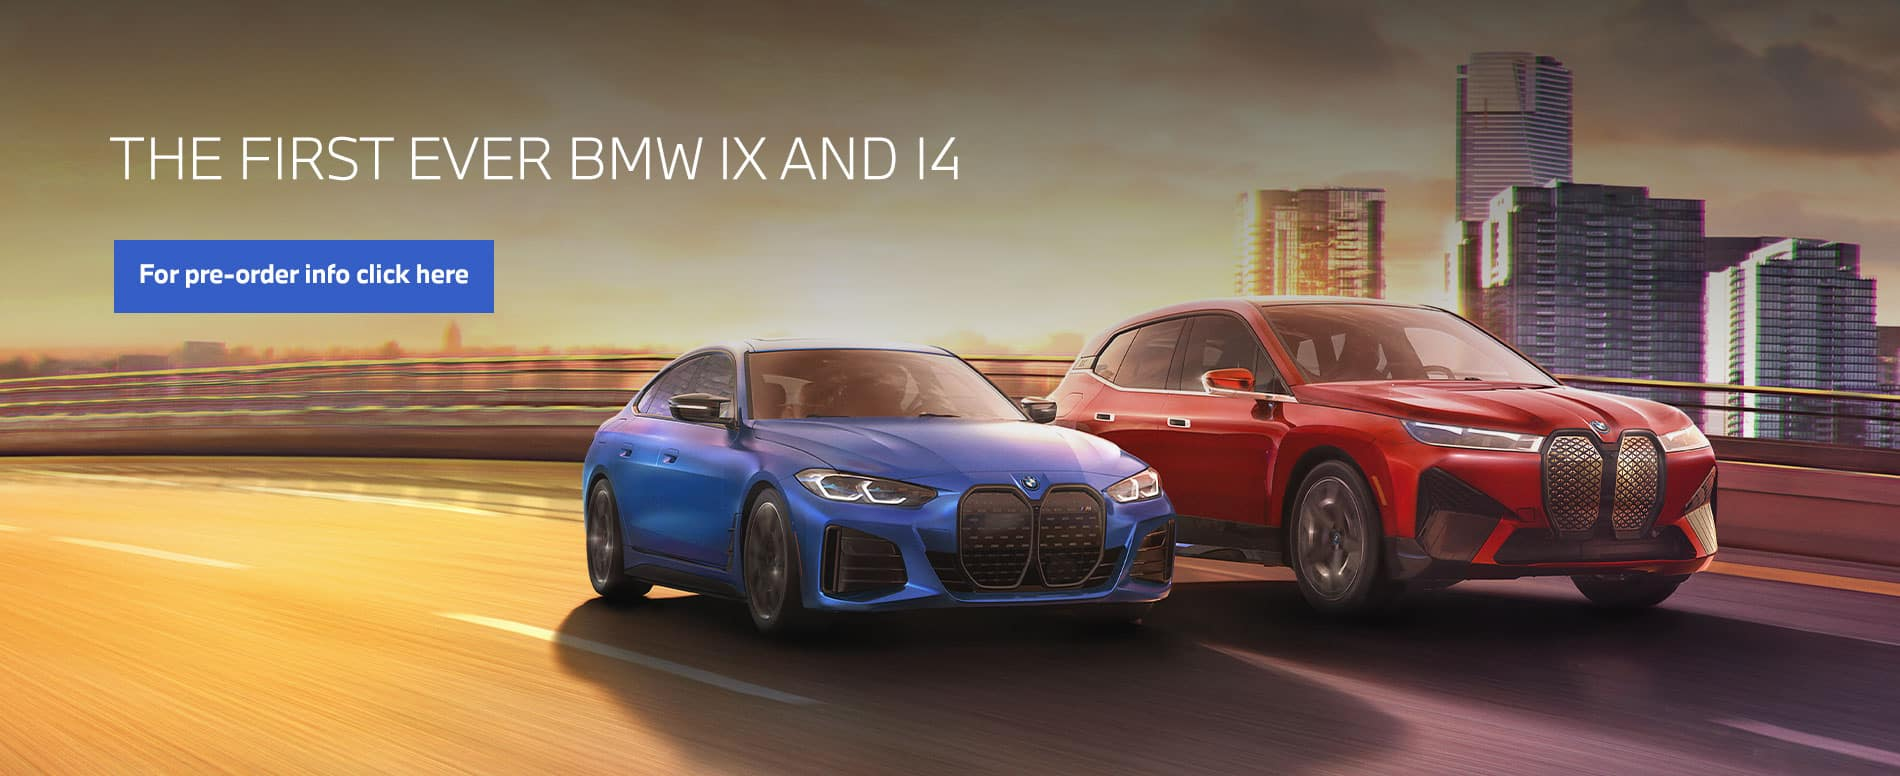 The first ever BMW iX and i4